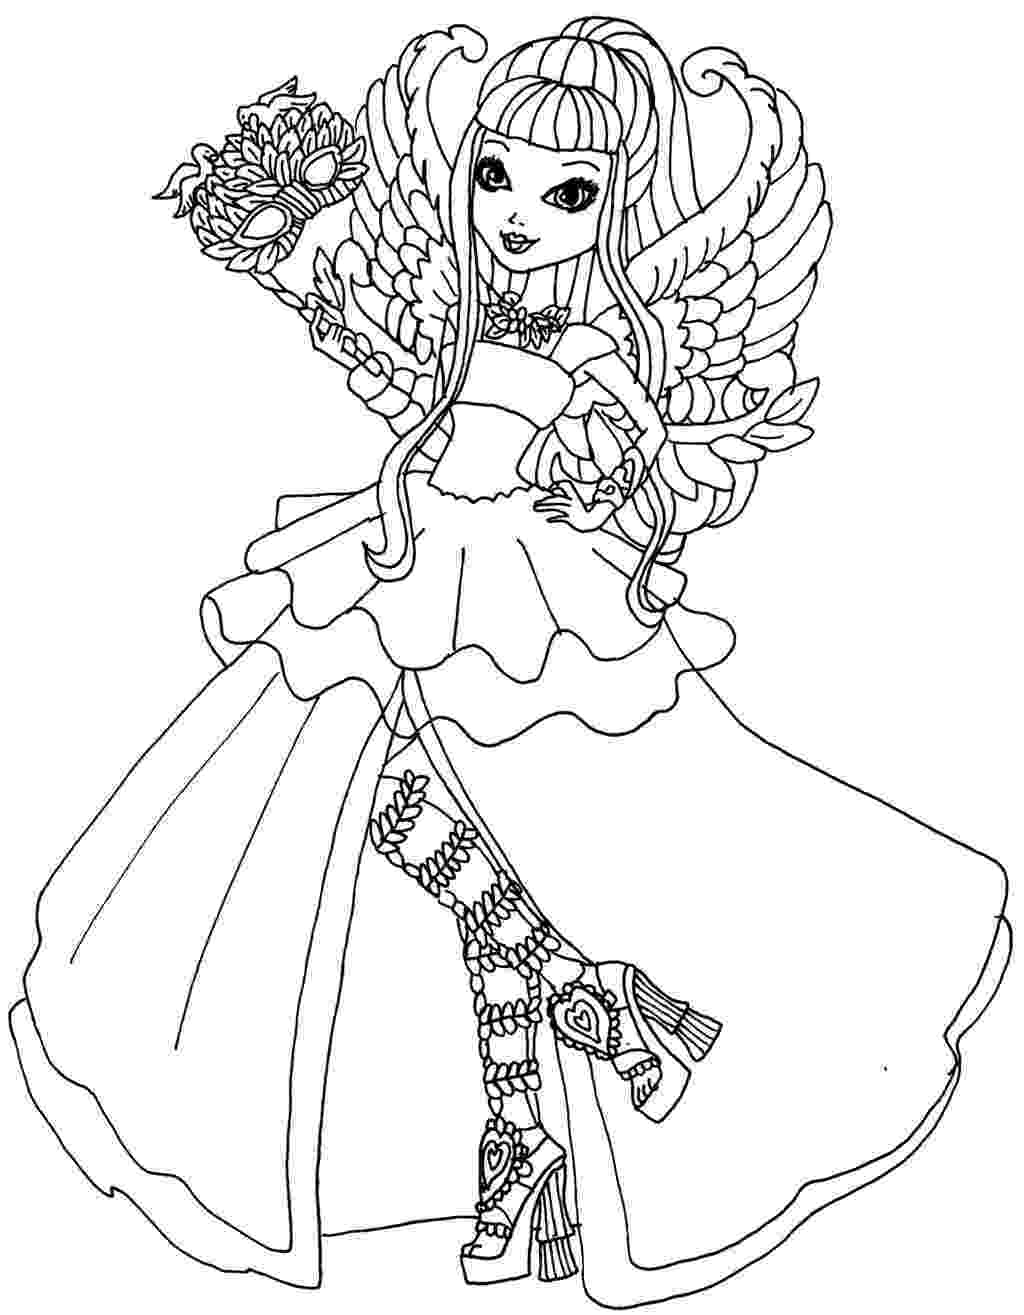 free ever after high printables ever after high coloring pages best coloring pages for kids free printables high after ever